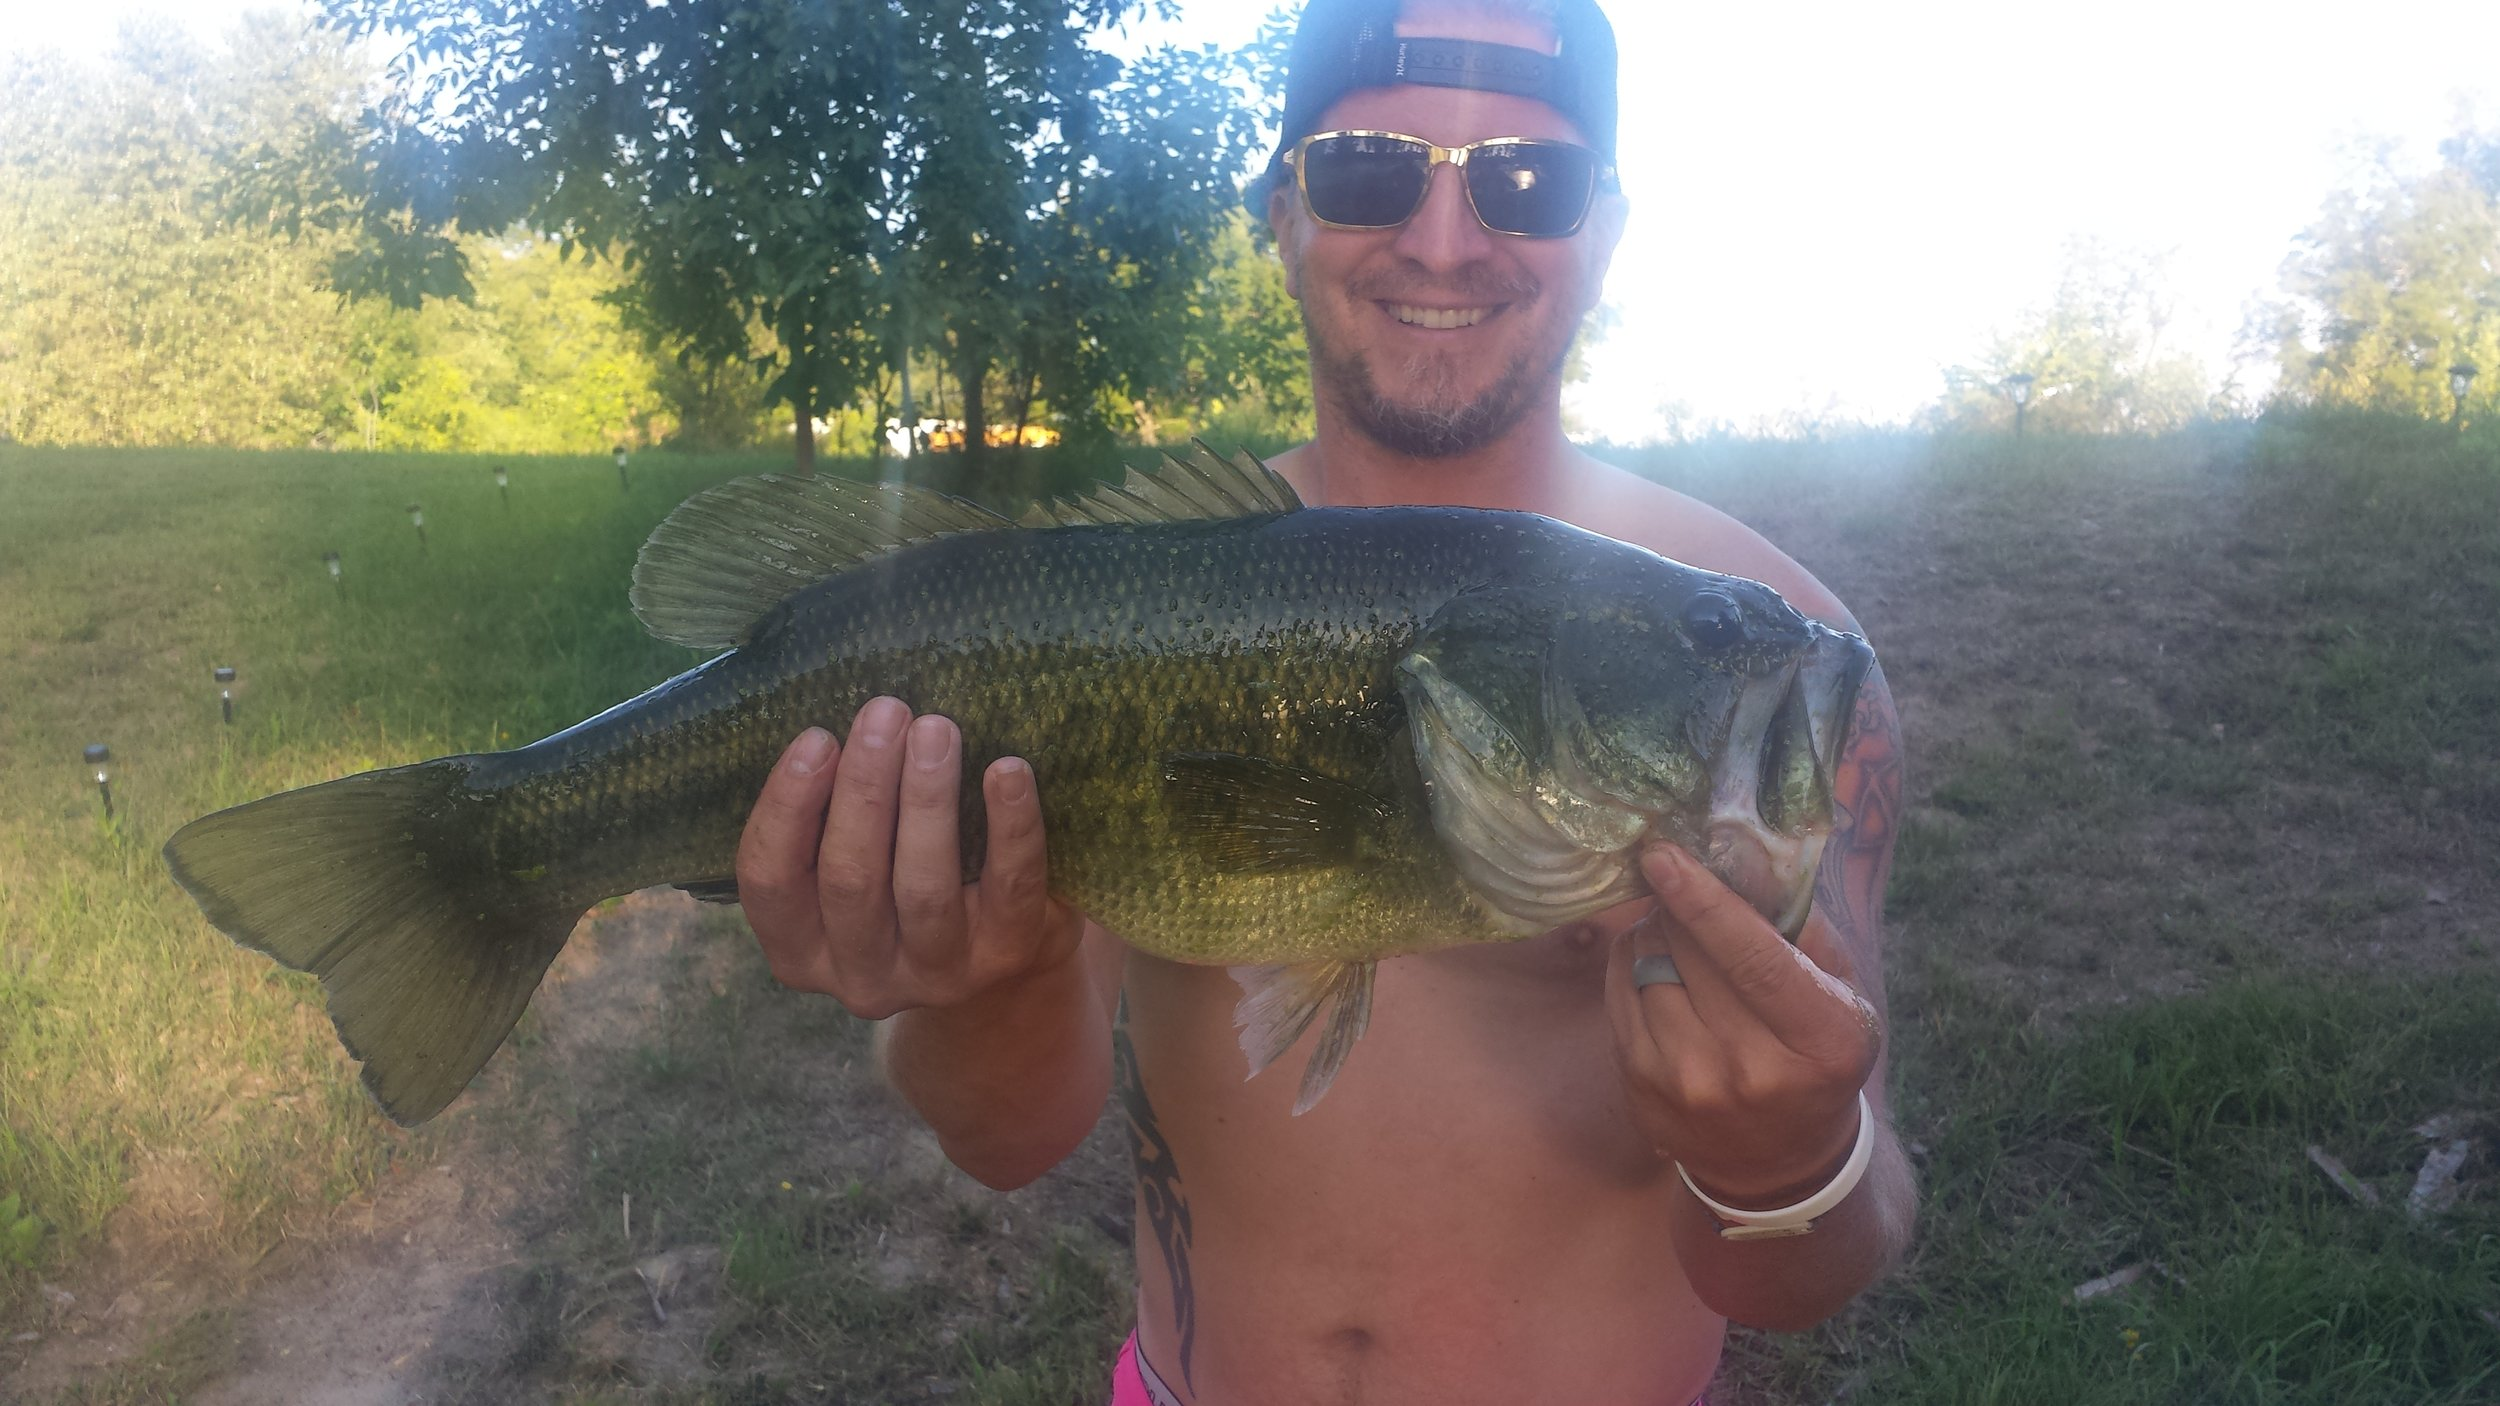 Brett hooking a big one out of our pond that has an impressive combination of both length and girth.